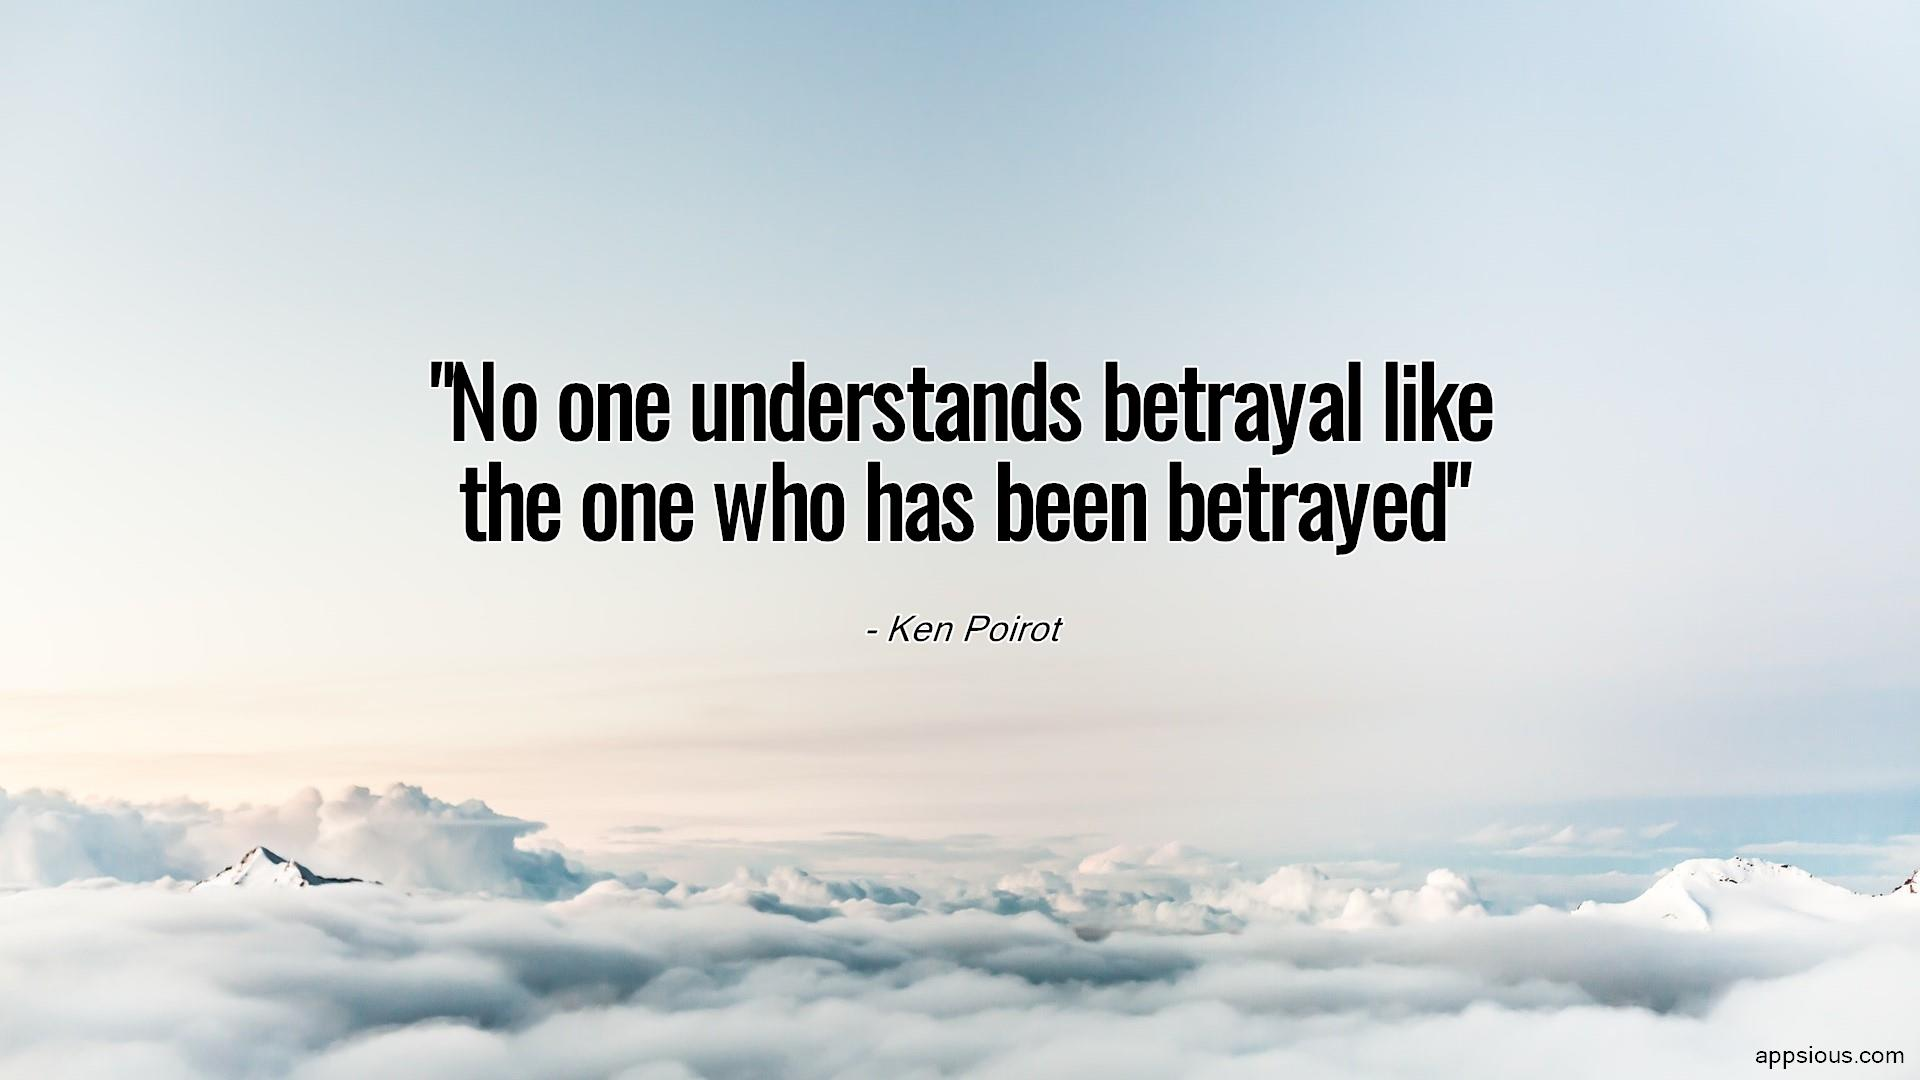 No one understands betrayal like the one who has been betrayed